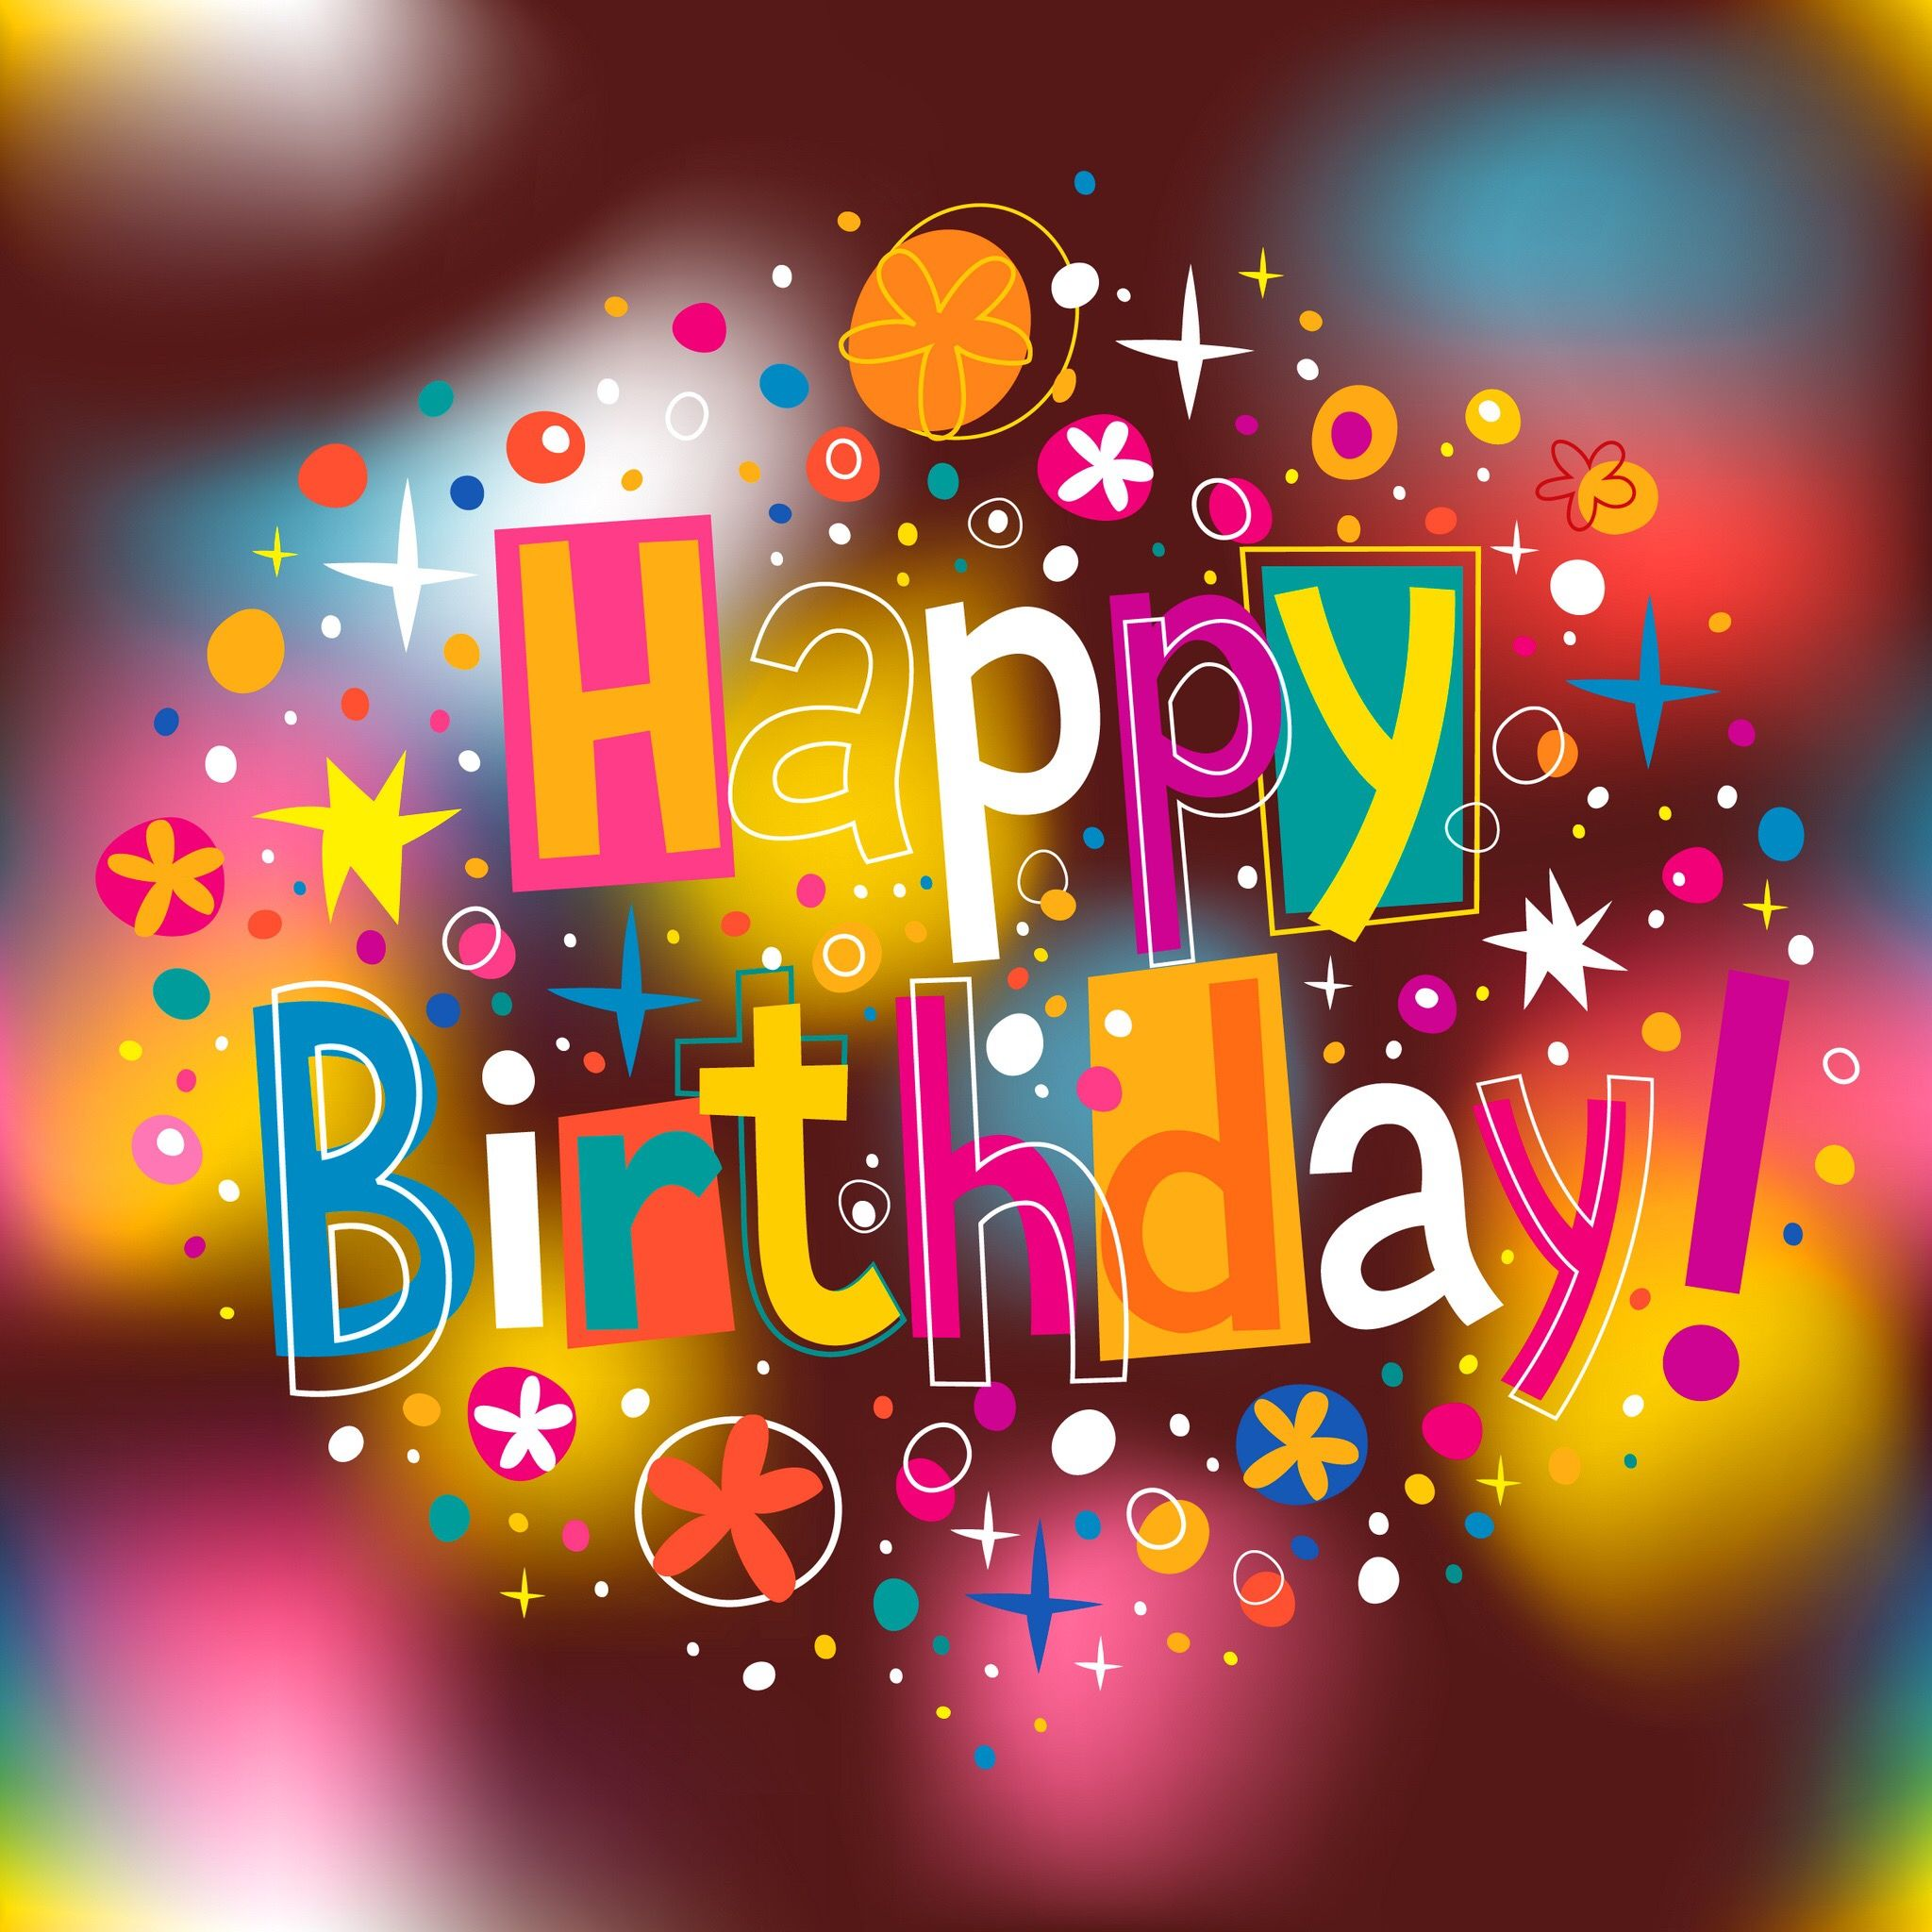 Happy Birthday #compartirvideos #felizcumple